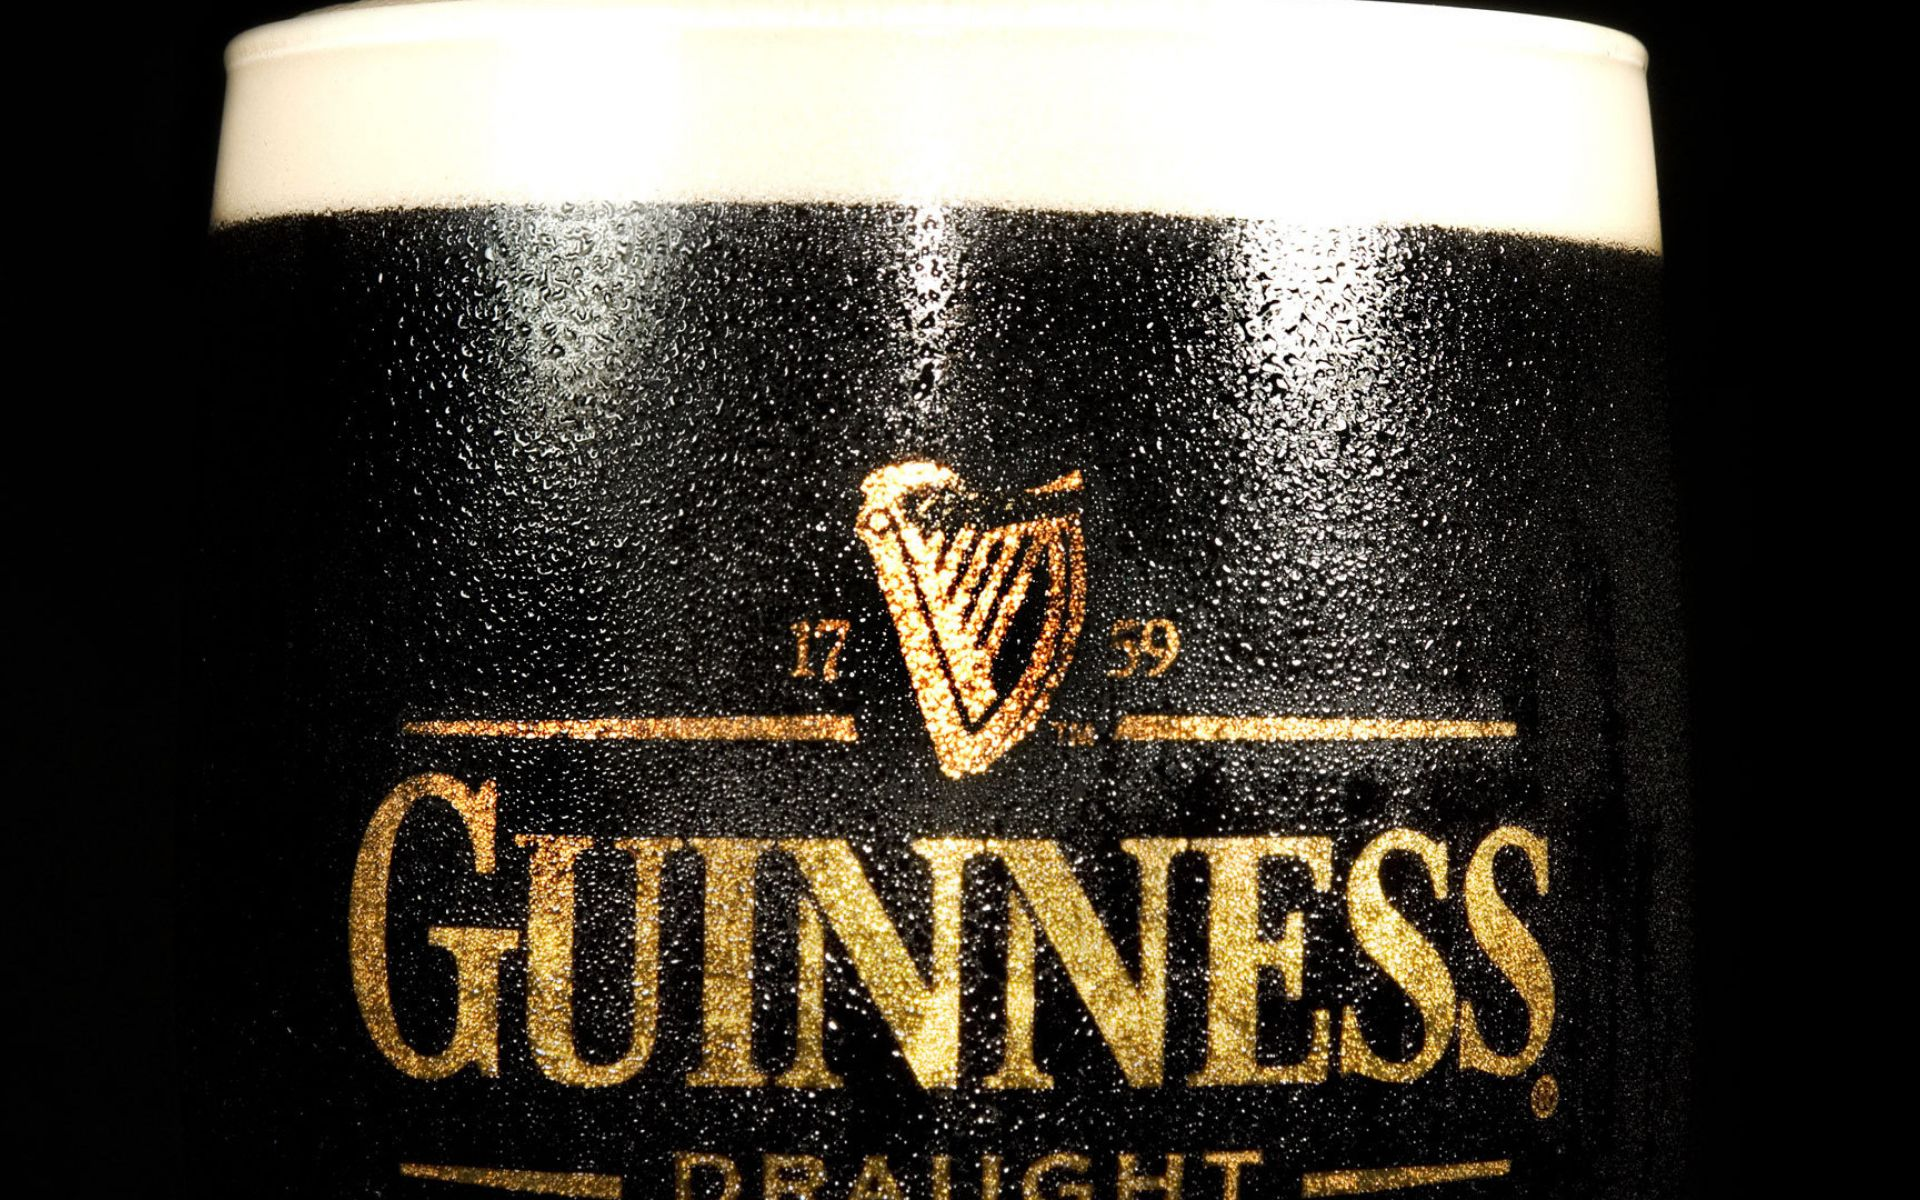 guinness 4 ps history